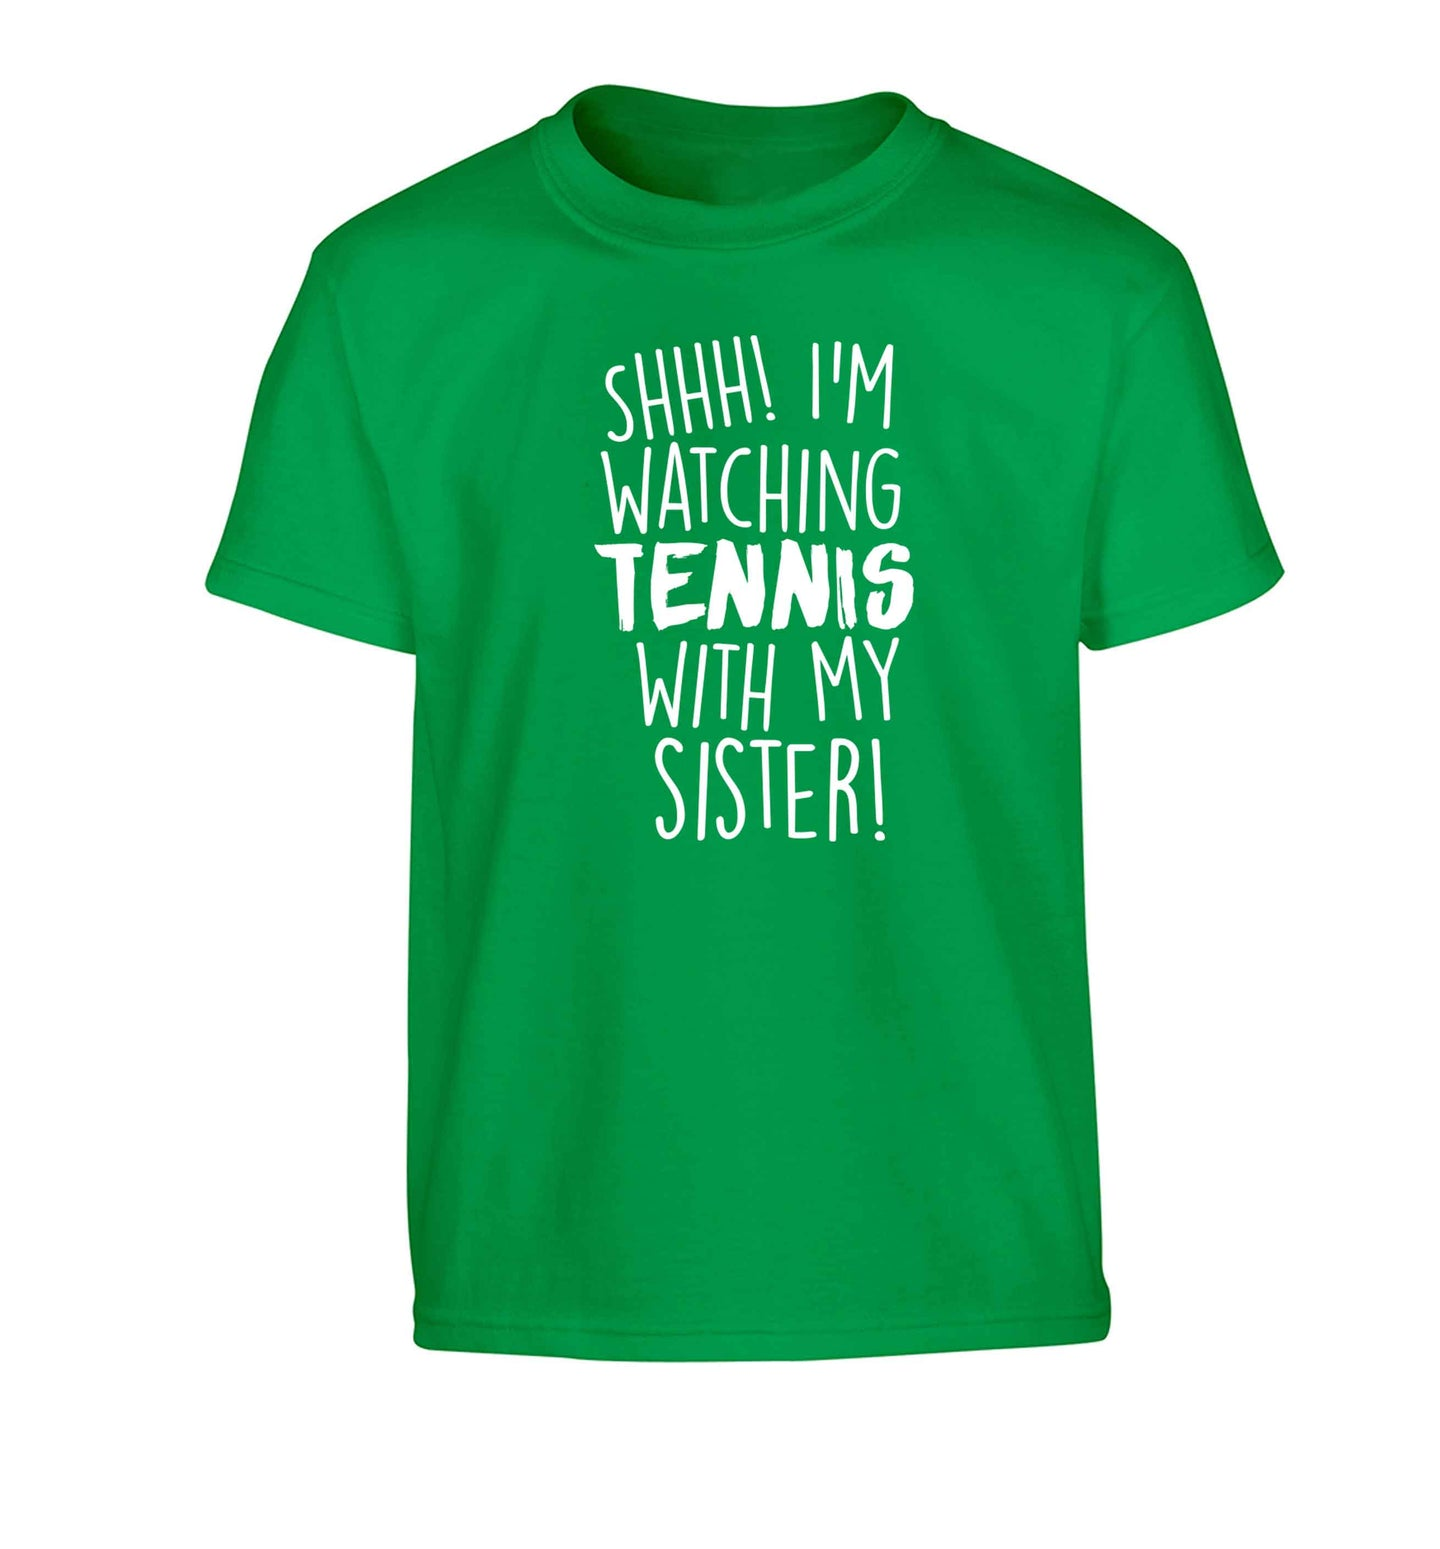 Shh! I'm watching tennis with my sister! Children's green Tshirt 12-13 Years